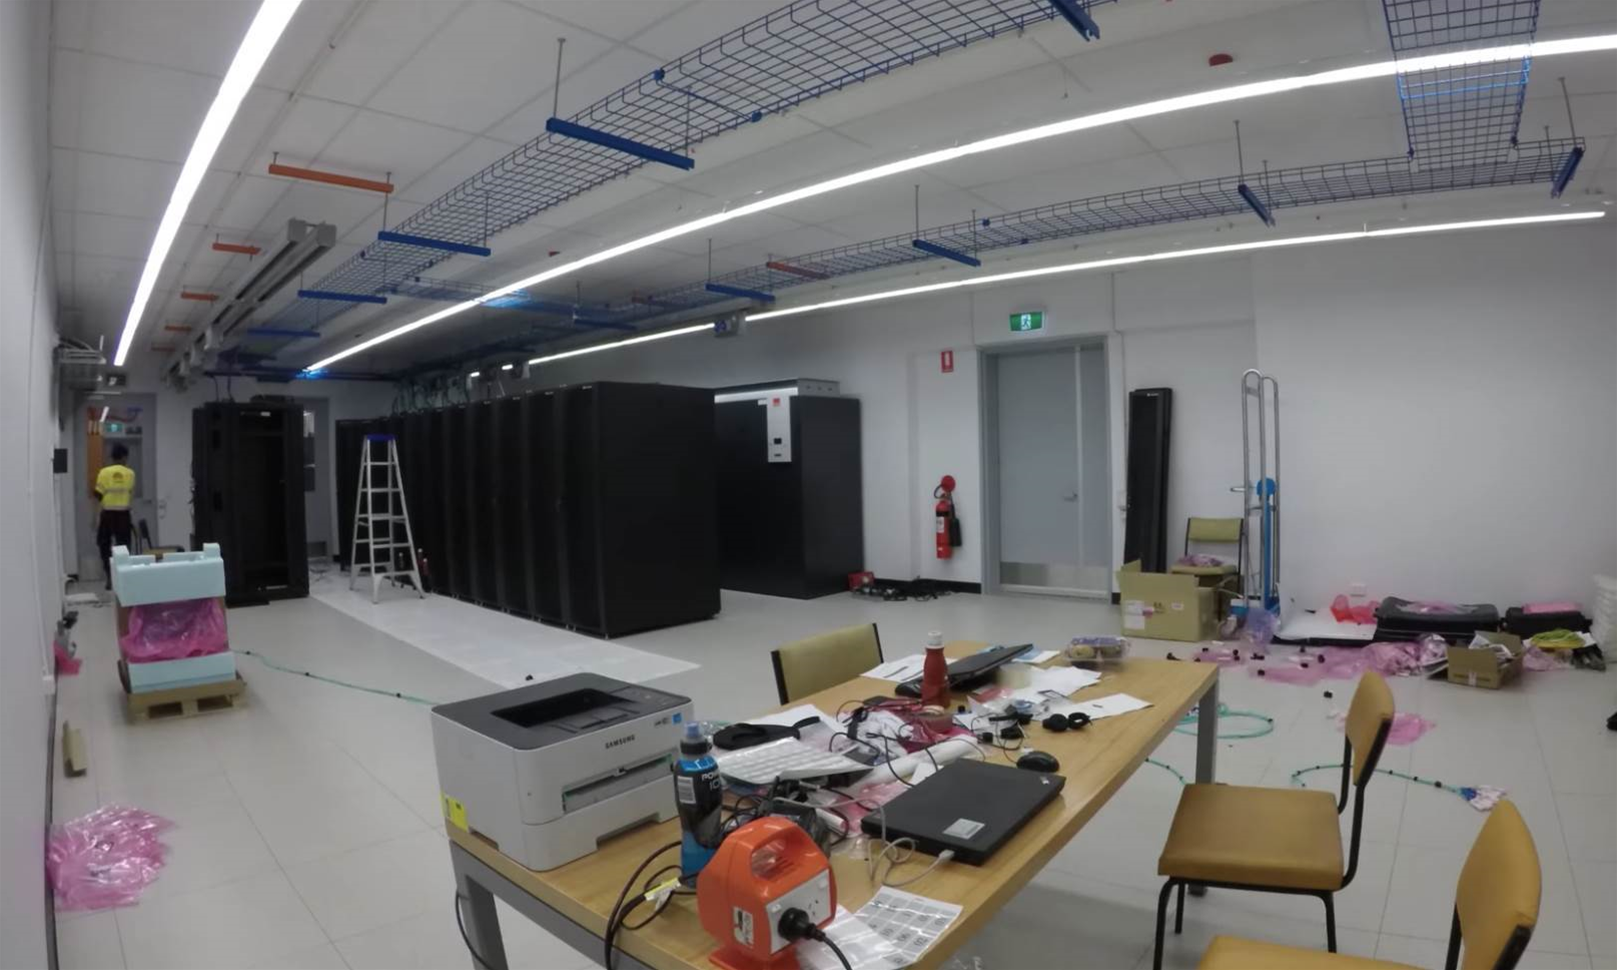 University of Tasmania loses $5m HPC cluster to floods